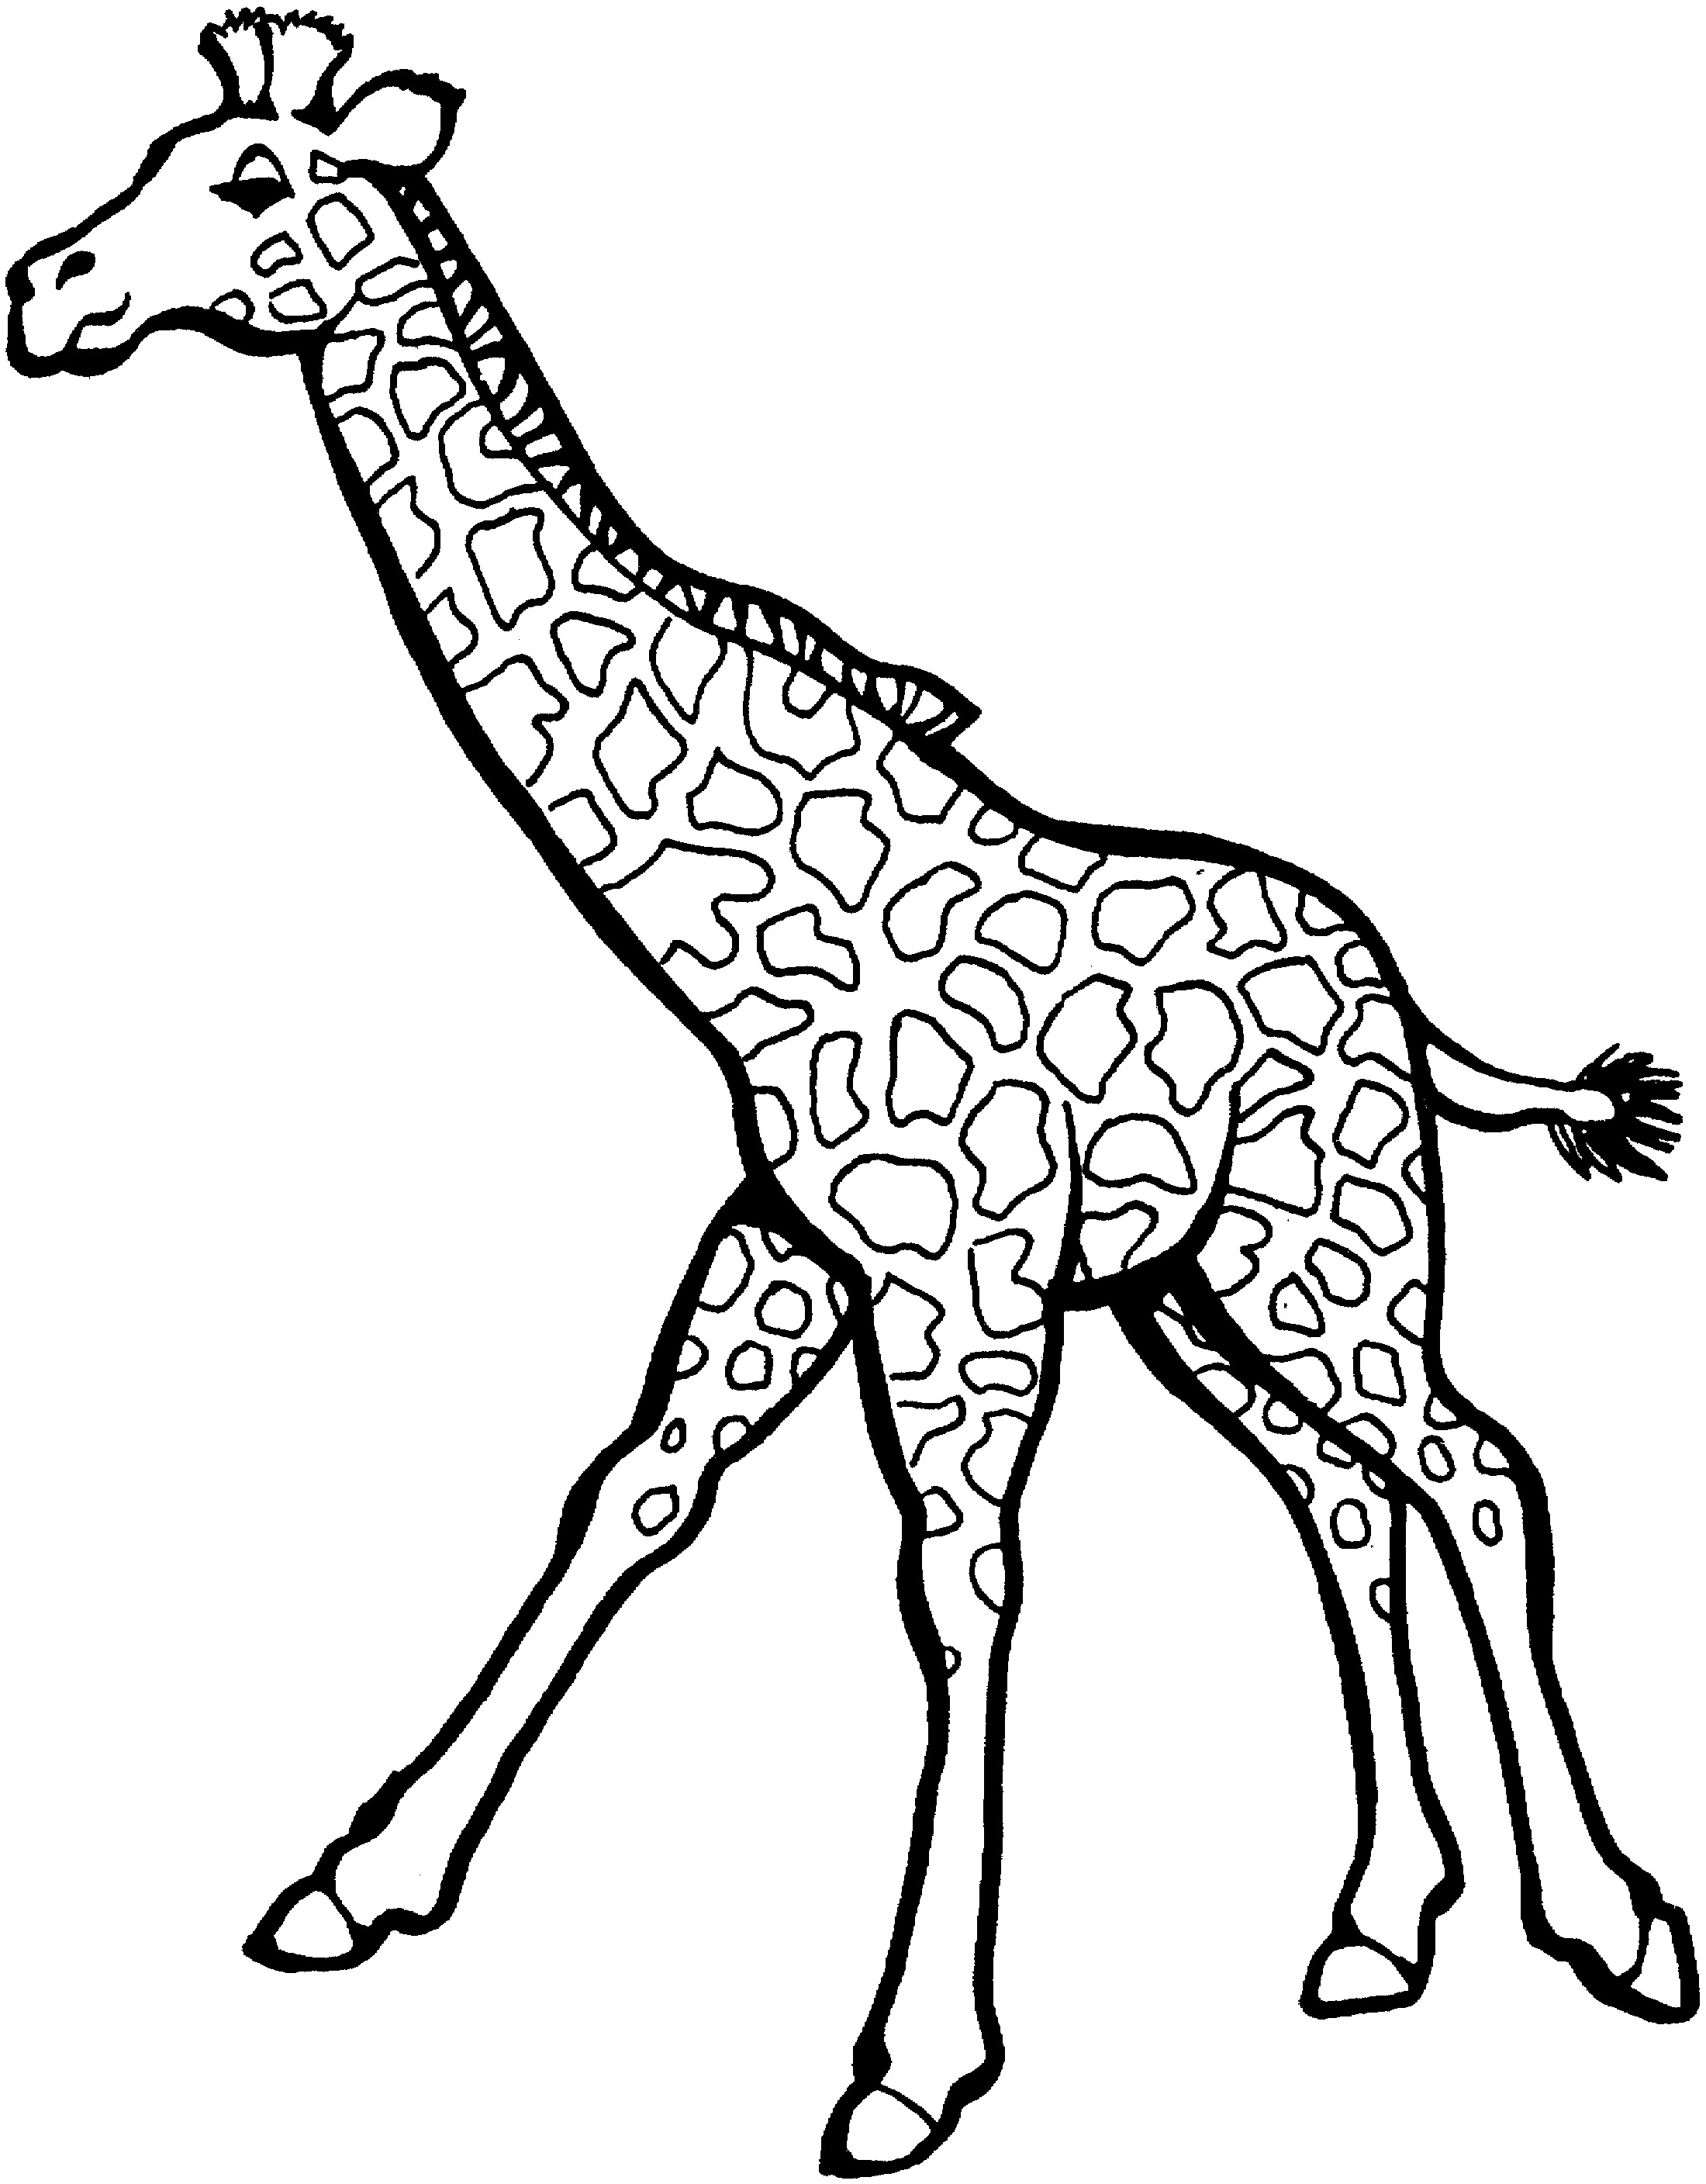 Giraffe Coloring Pages For